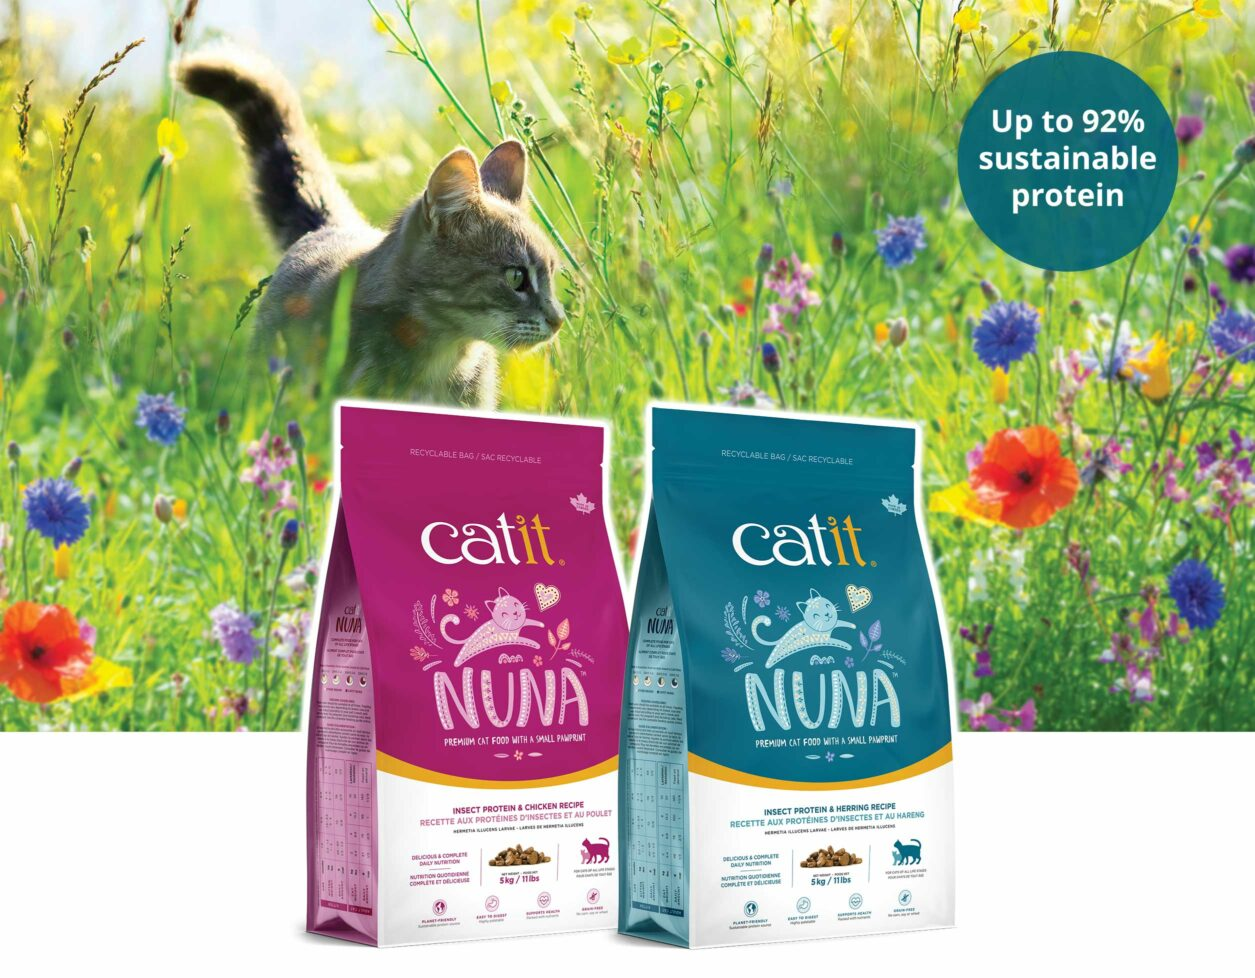 Catit Nuna introduction image - up to 92% sustainable protein